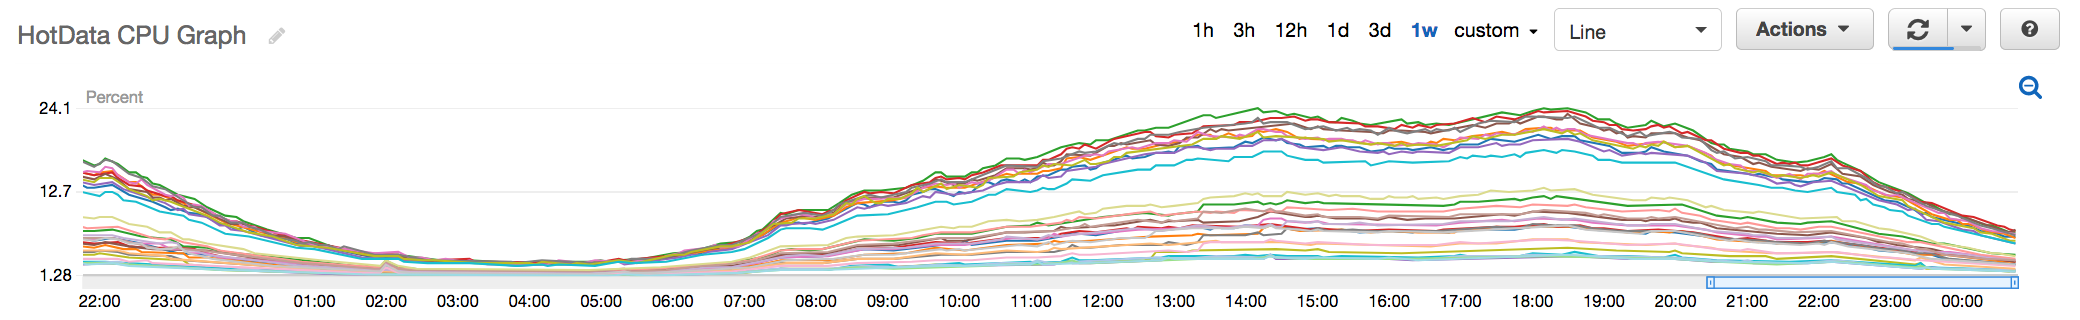 Fig 6. New Hot Data Redis Cluster with CPU peaking at around 24%